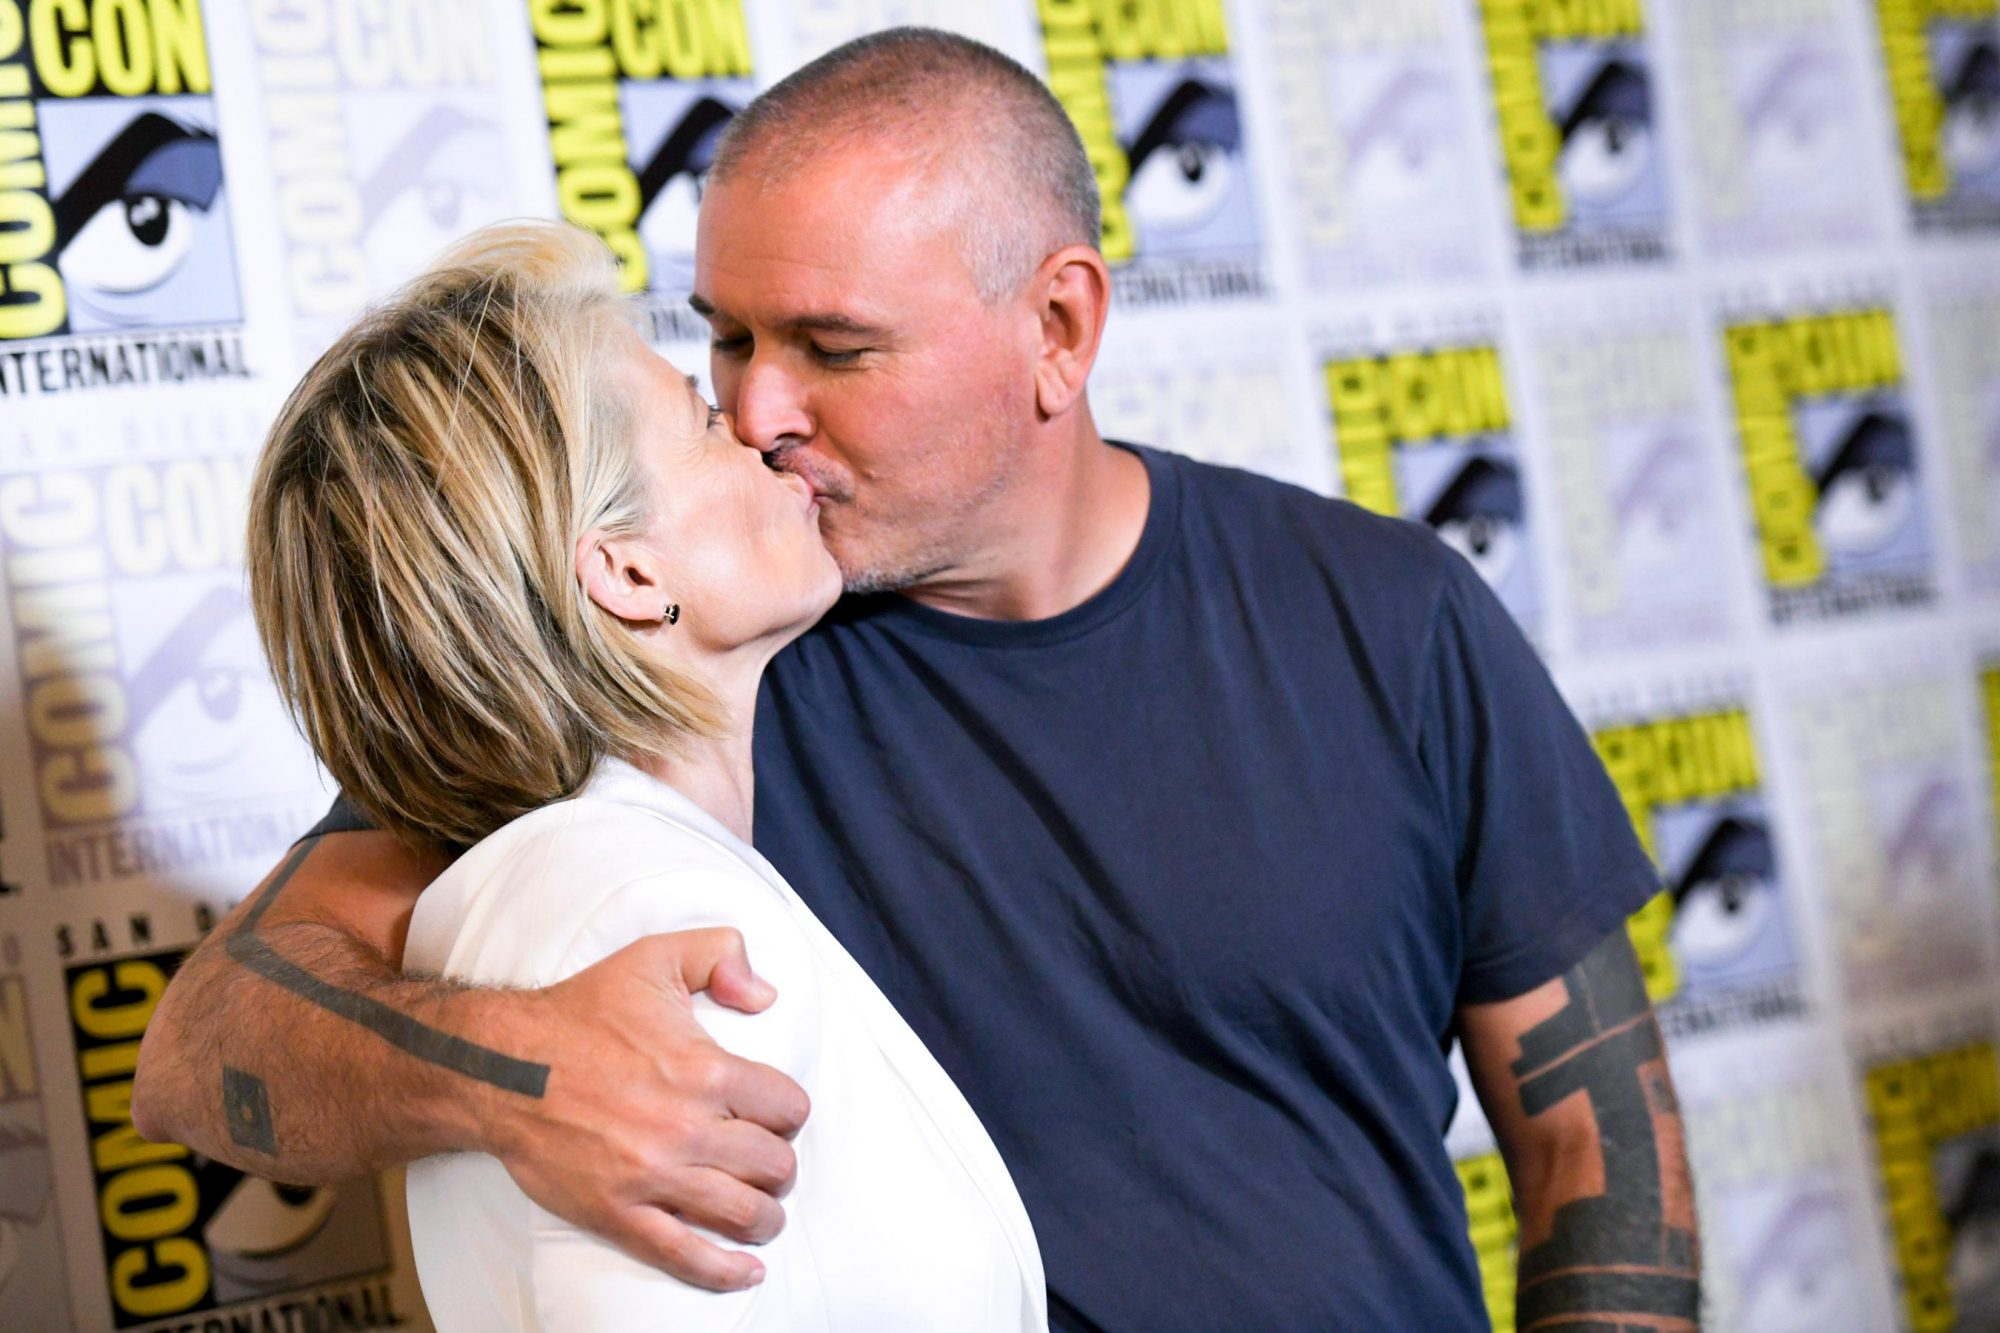 Actress Linda Hamilton and director Tim Miller arrive for the Terminator: Dark Fate red carpet event at the Hilton Bayfront during Comic Con in San Diego, California on July 18, 2019. (Photo by Chris Delmas / AFP) (Photo credit should read CHRIS DELMAS/AFP/Getty Images)